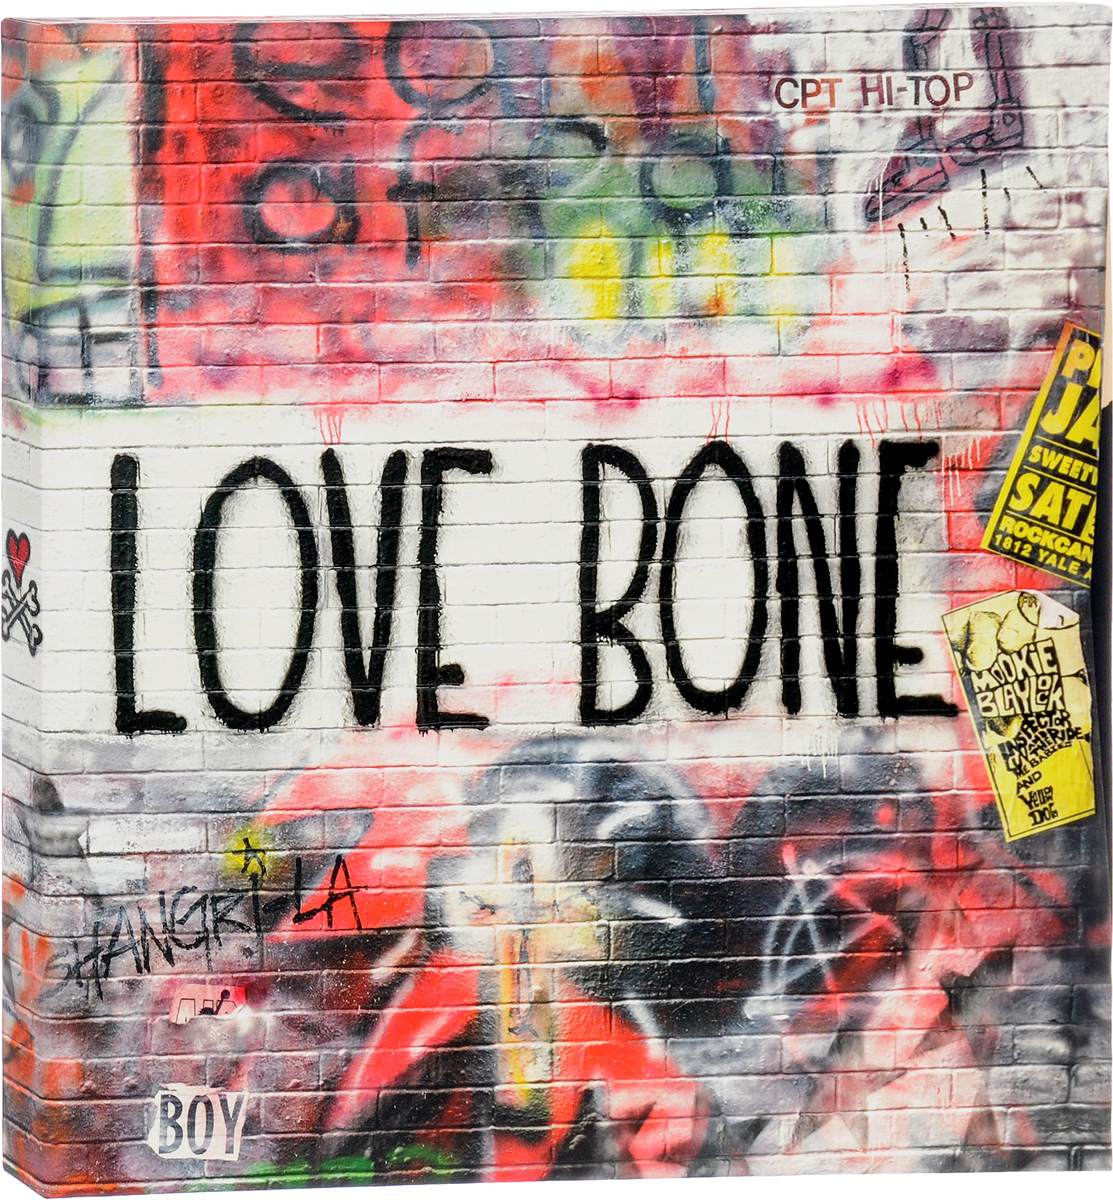 Mother Love Bone Mother Love Bone. On Earth As It Is. The Complete Works (3 LP) the good mother